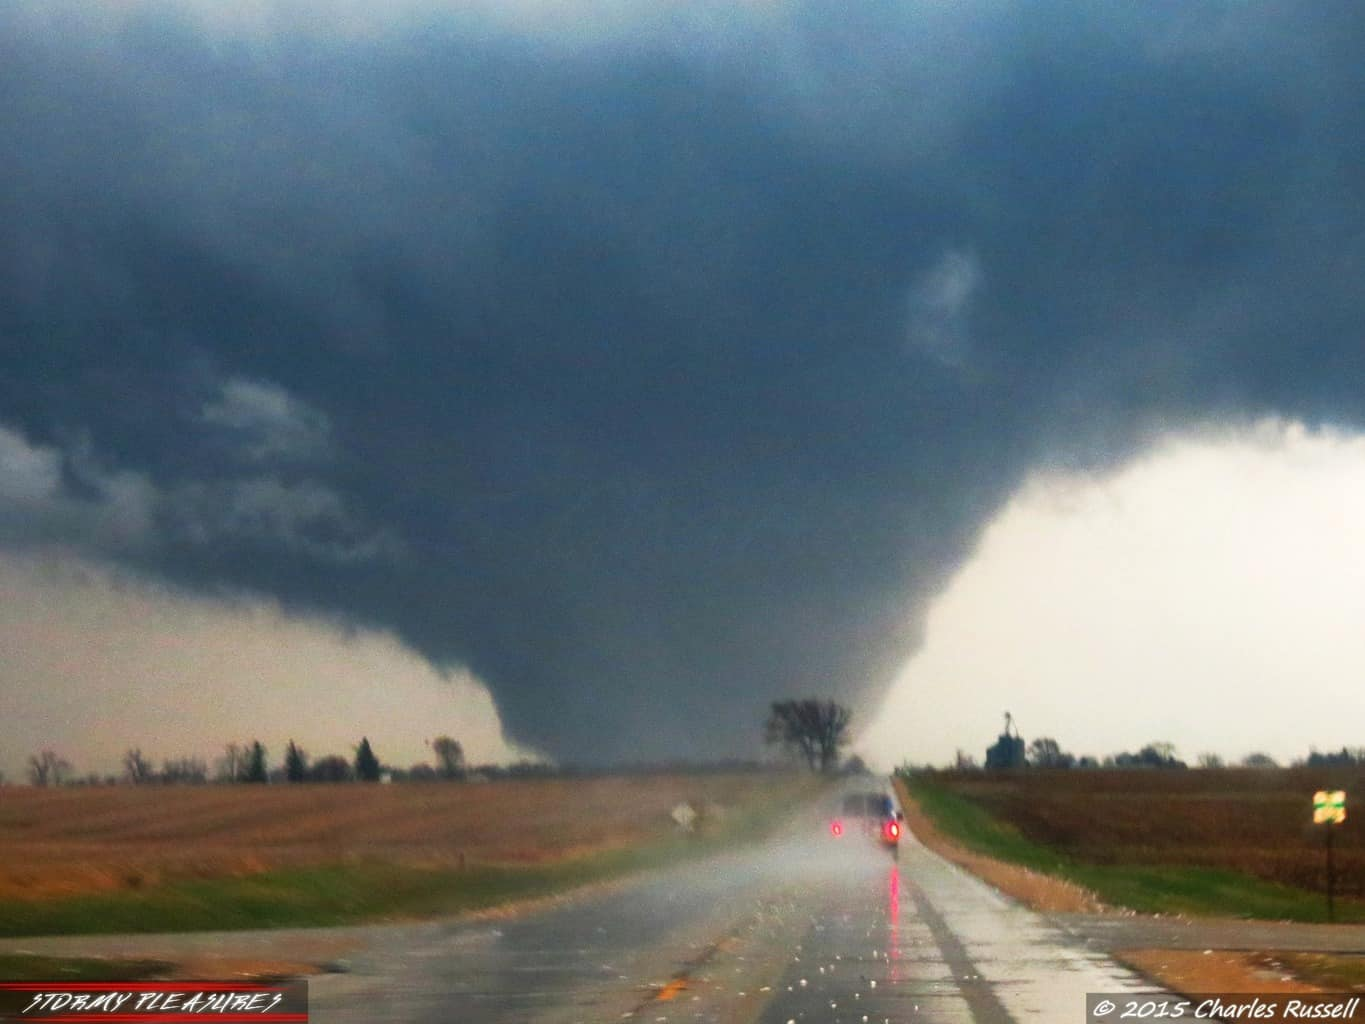 Racing toward the Rochelle, IL EF-4 Wedge Tornado on 4/9/15. Ahead of us, an Extreme Tornado Tours team van shows their guests the tornado of a lifetime. Large hailstones lay all over the road as we blasted toward this tornado. This is a shot that I have never posted before on social media. It was tough to get clear shots of this tornado due to many factors, but we couldn't stop, we would have fell too far behind. I was chasing with my buddy CJ on this day. A day we will never forget. Such an intense and exciting day. Best chase of the year for me, and so far, the largest, most powerful tornado I've ever documented.